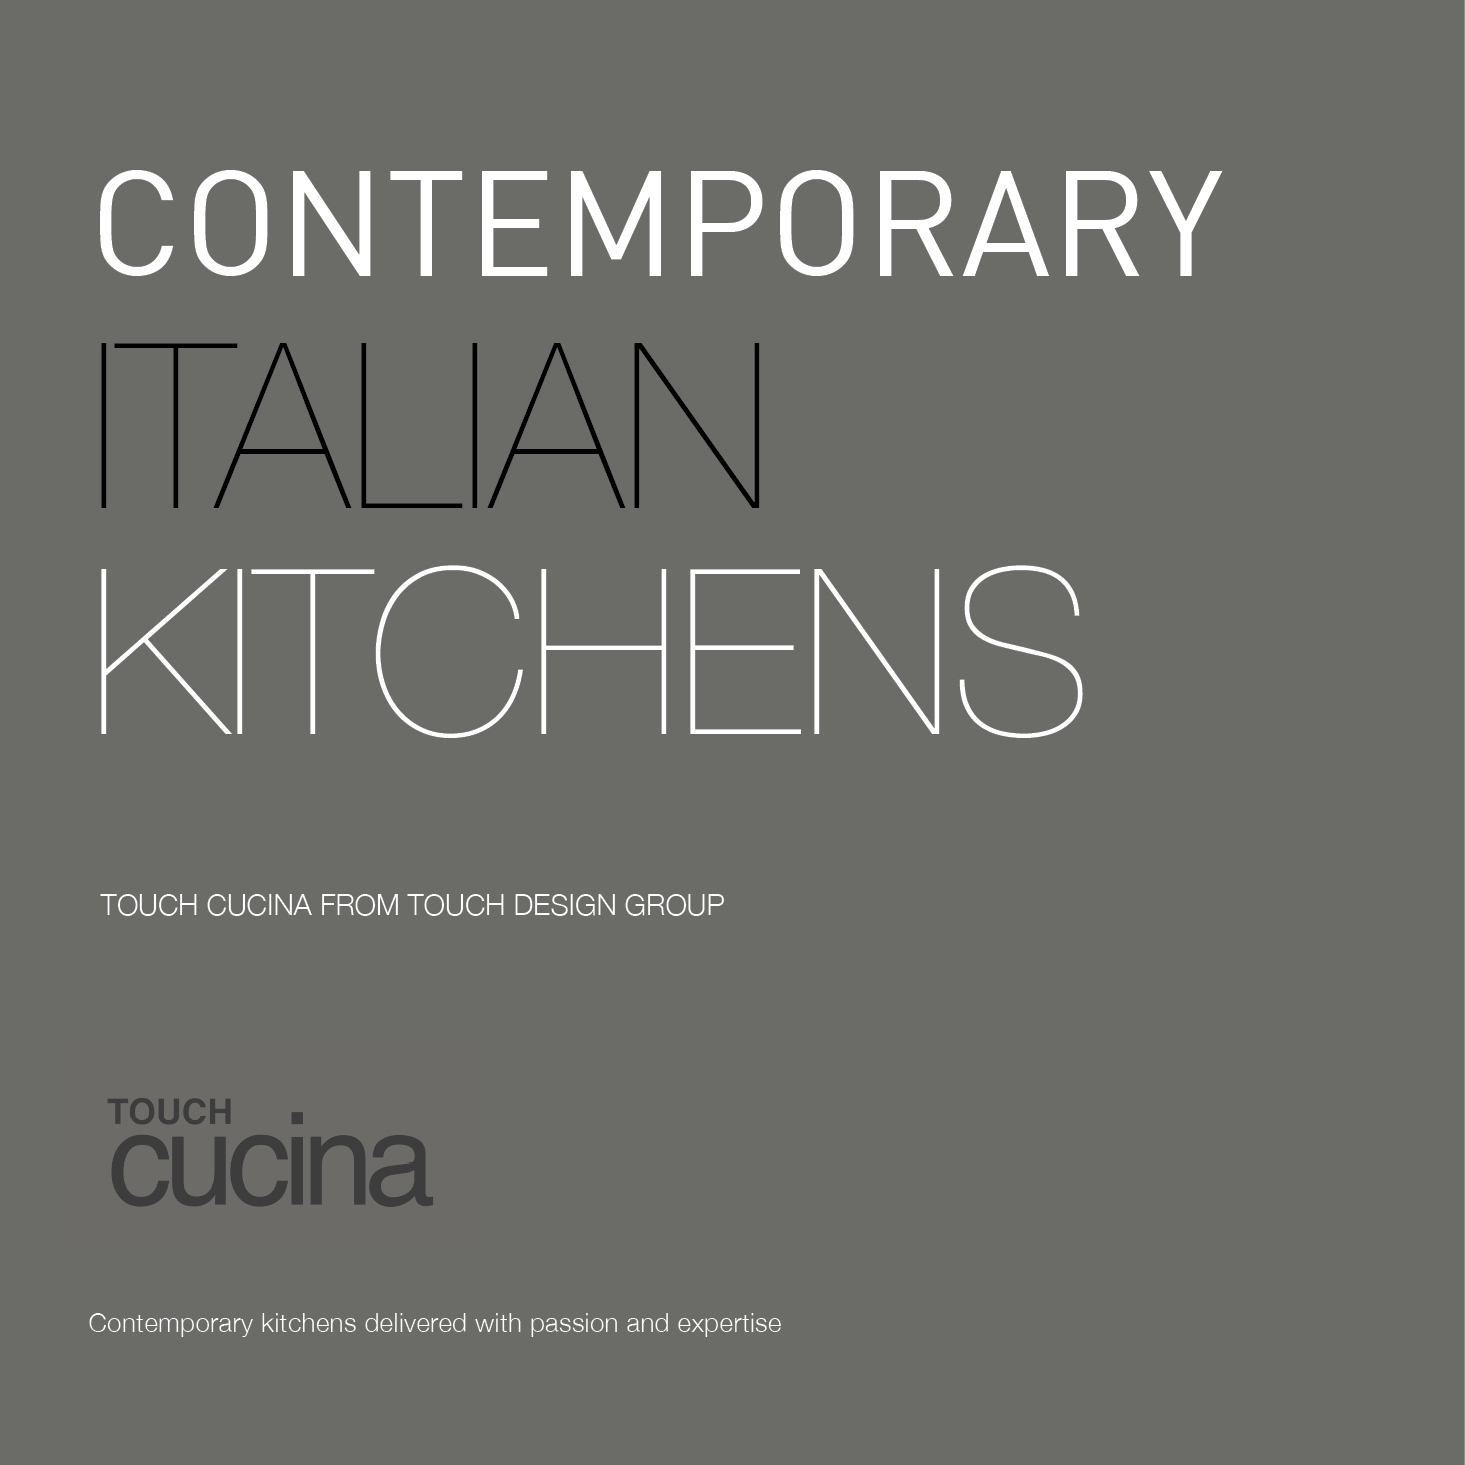 touch cucina book cover1.jpg